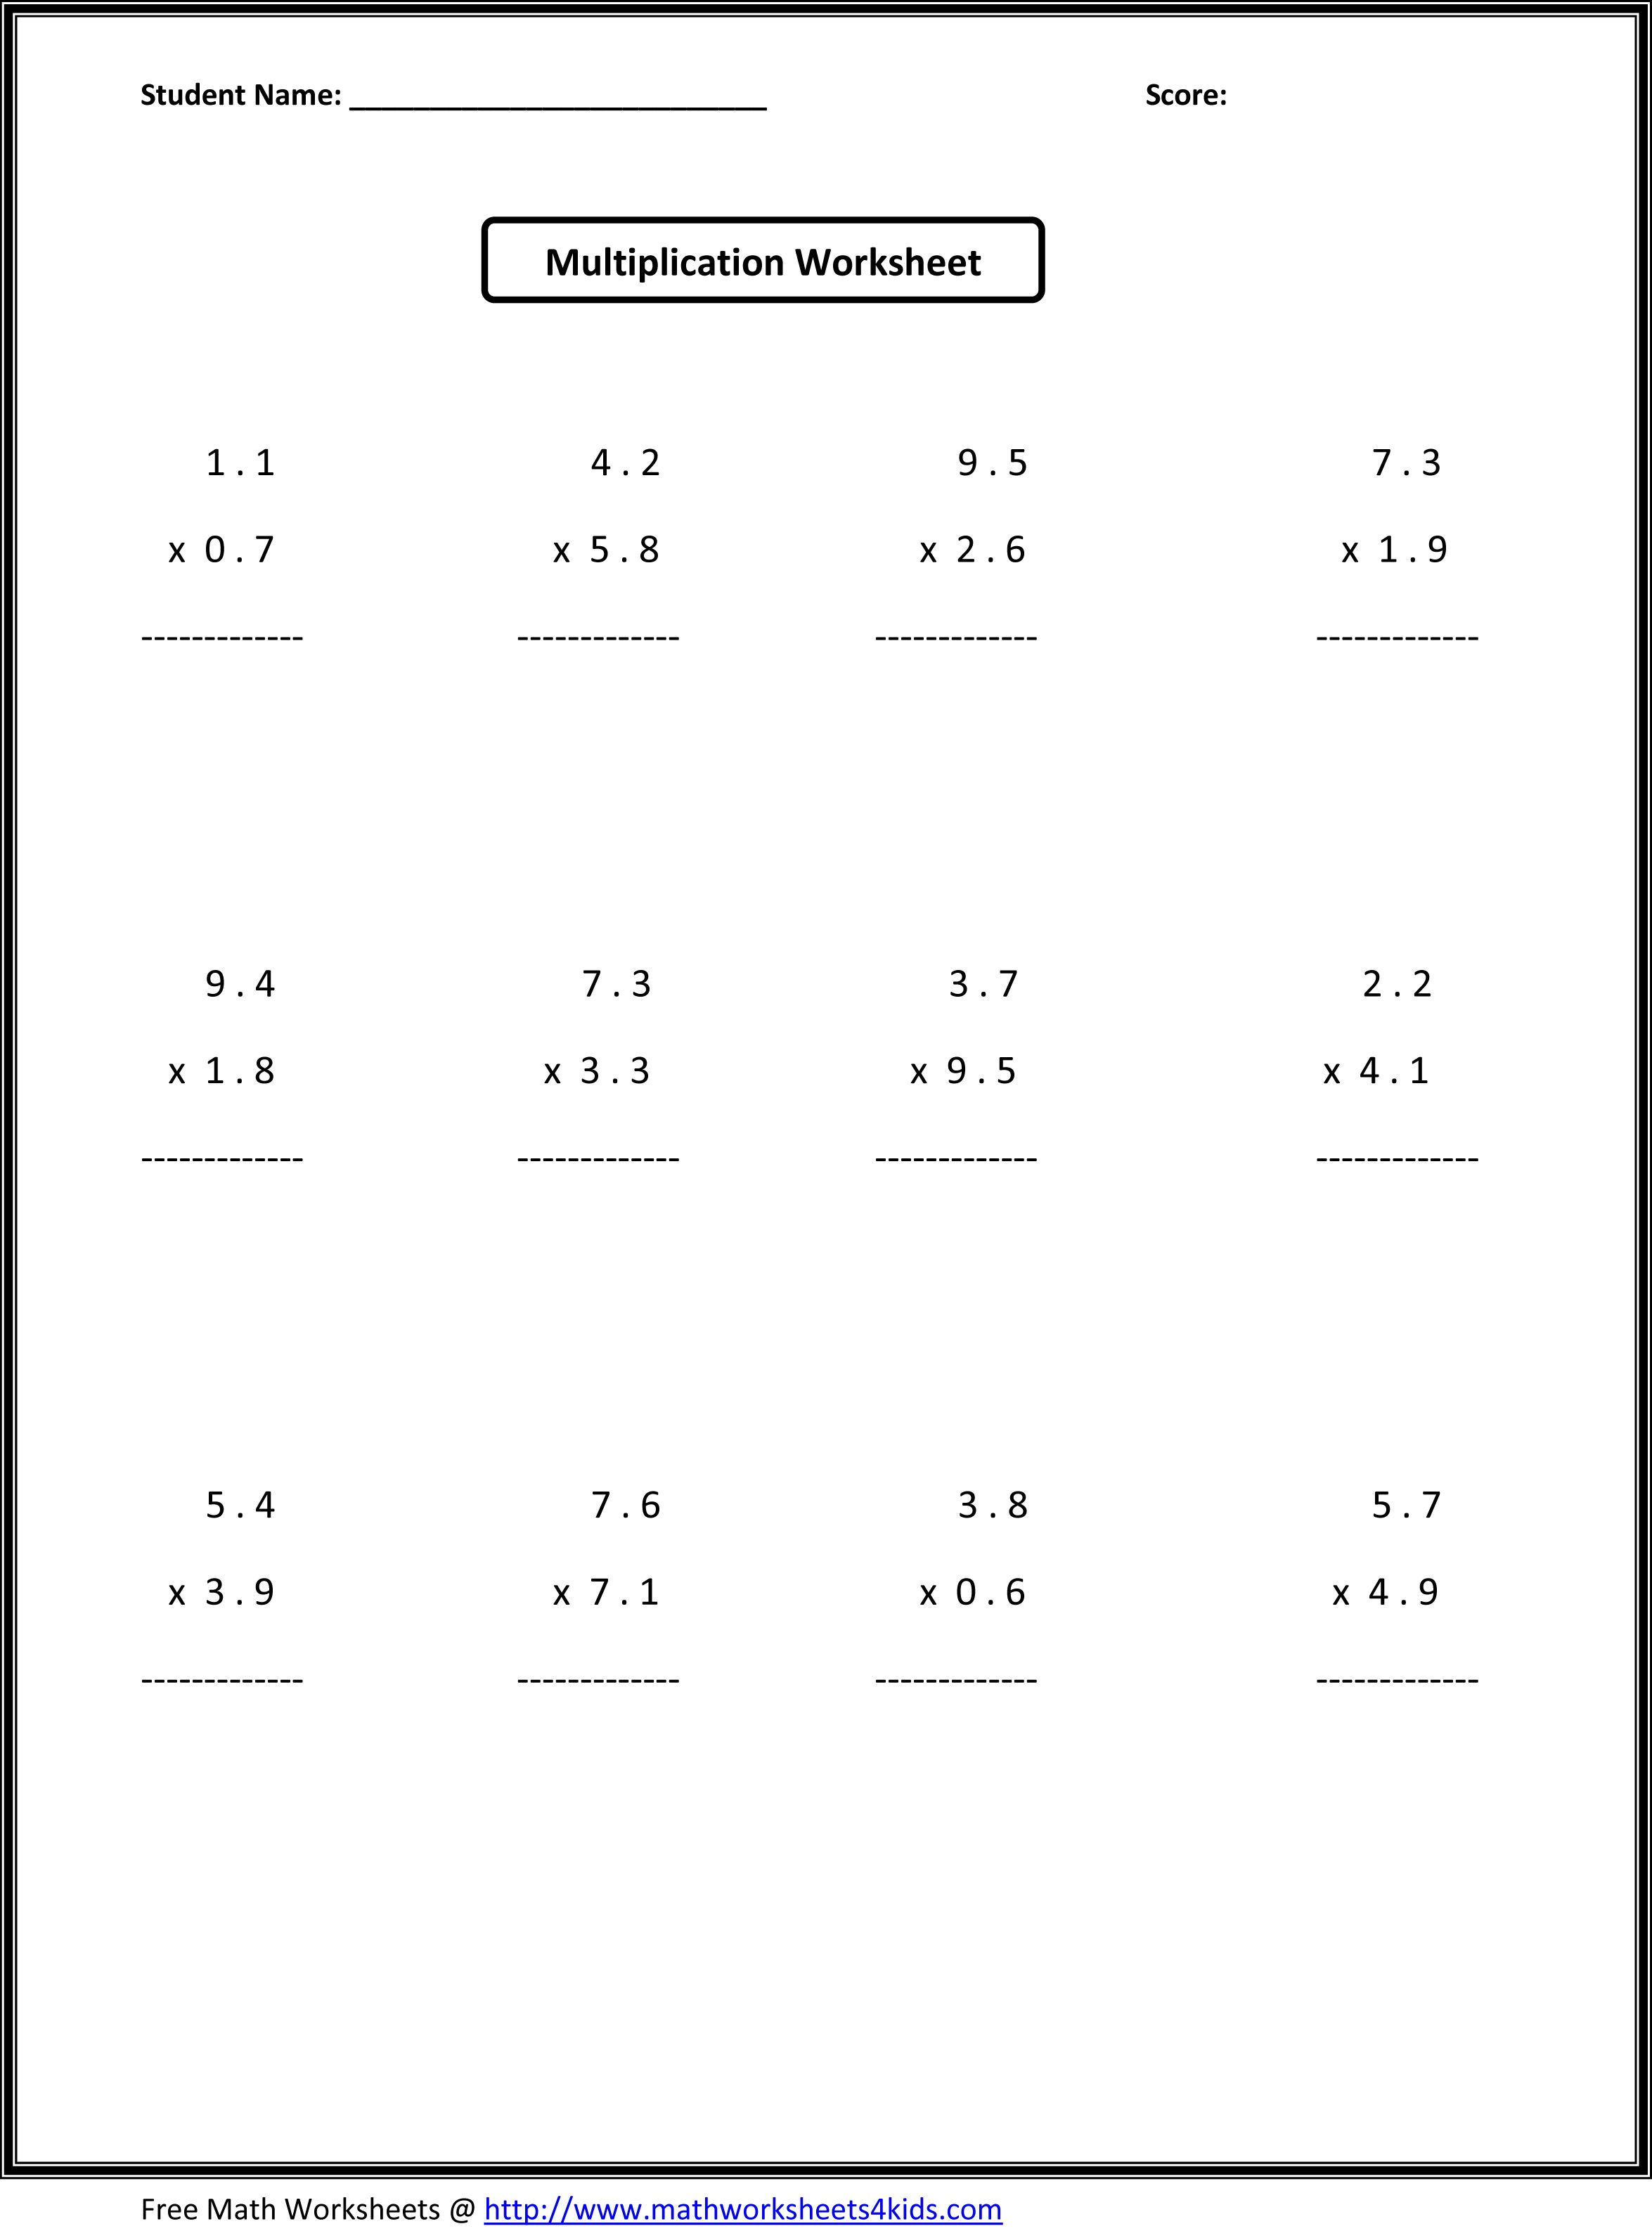 7th grade math worksheets – 5th Grade Math Worksheets with Answer Key